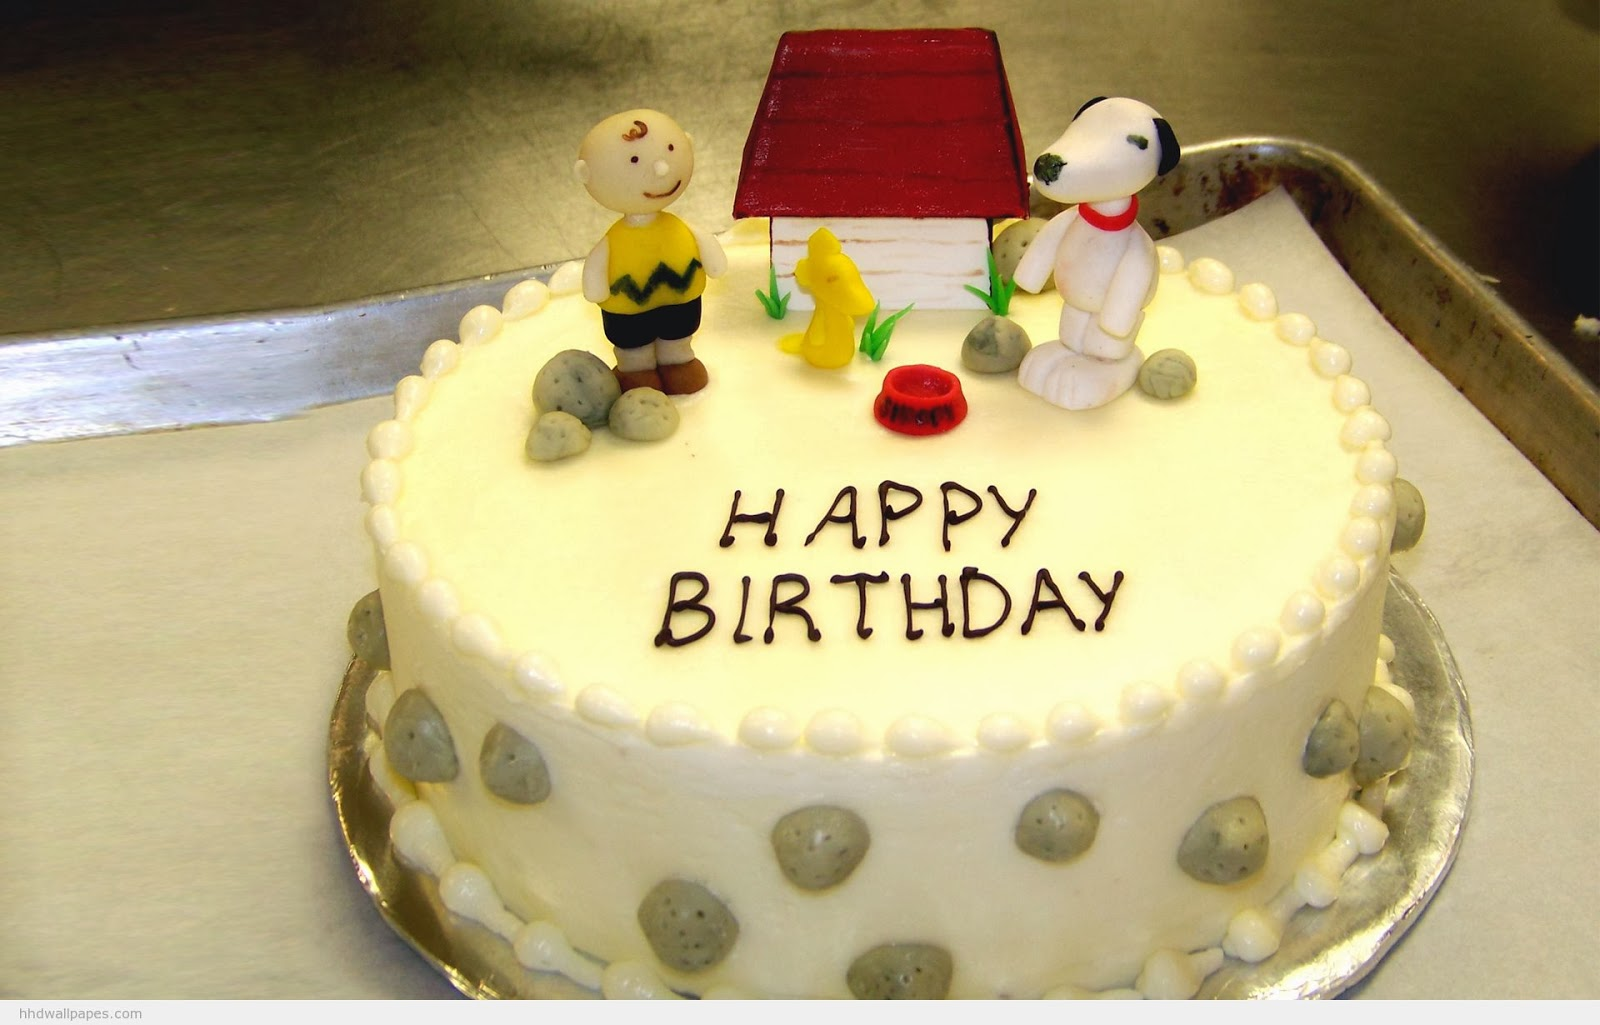 Images Of Cake With Wishes : Lovable Images: Happy Birthday Greetings free download ...